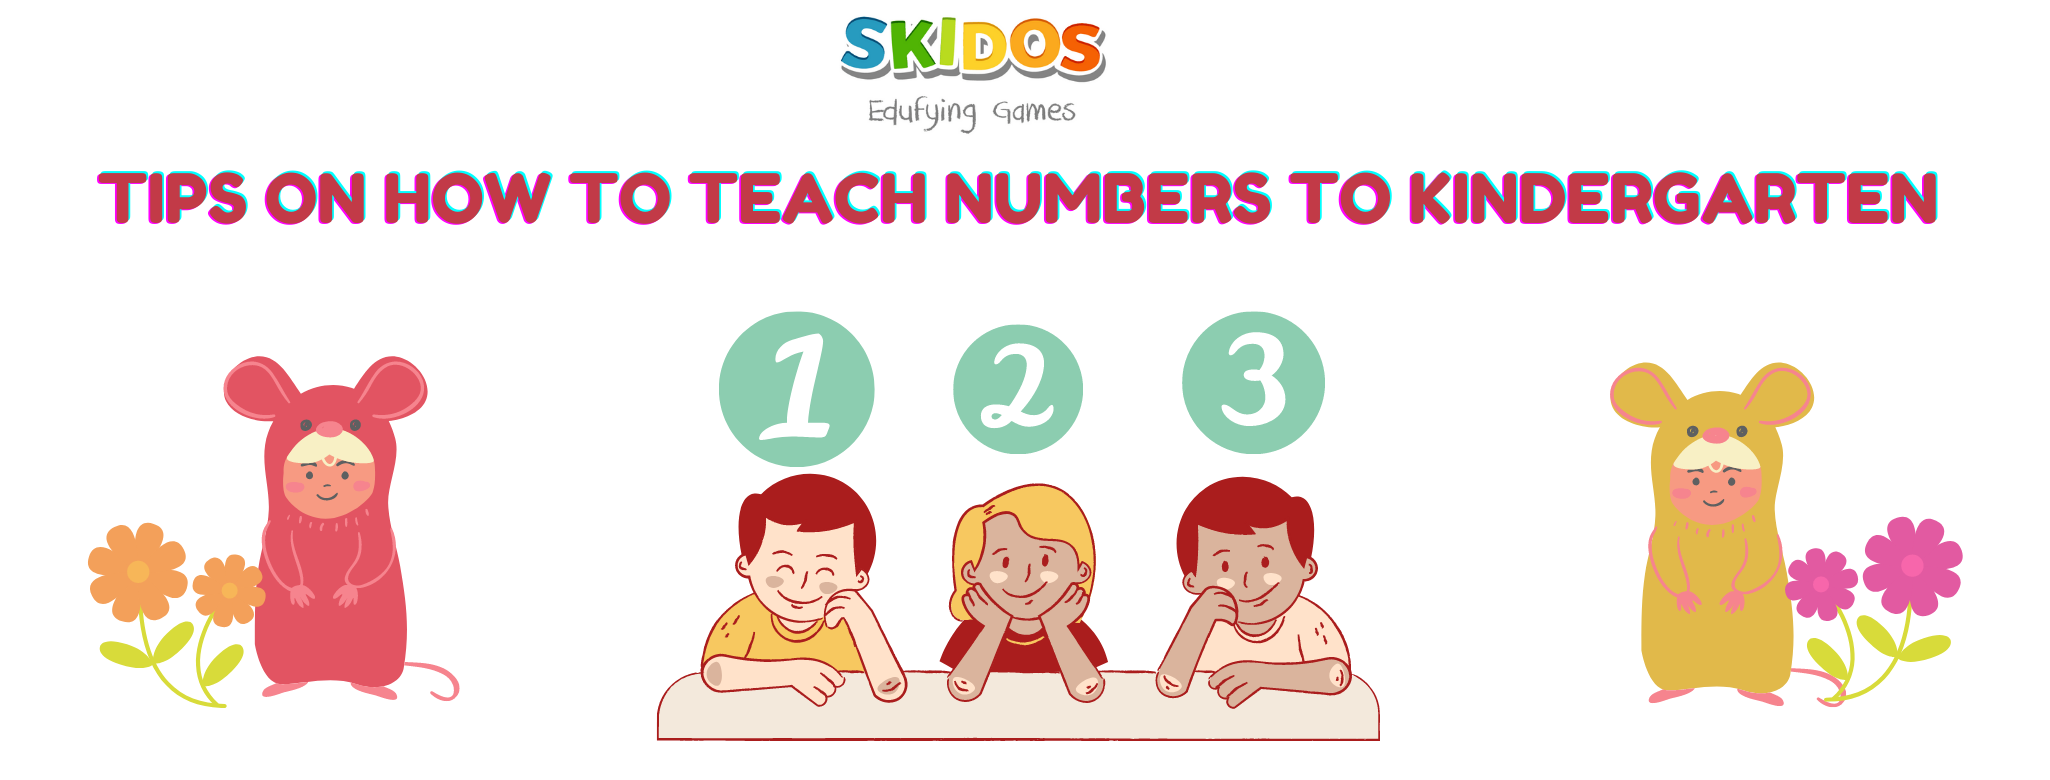 10+ Tips on How to Teach Numbers to Kindergarten [Updated]